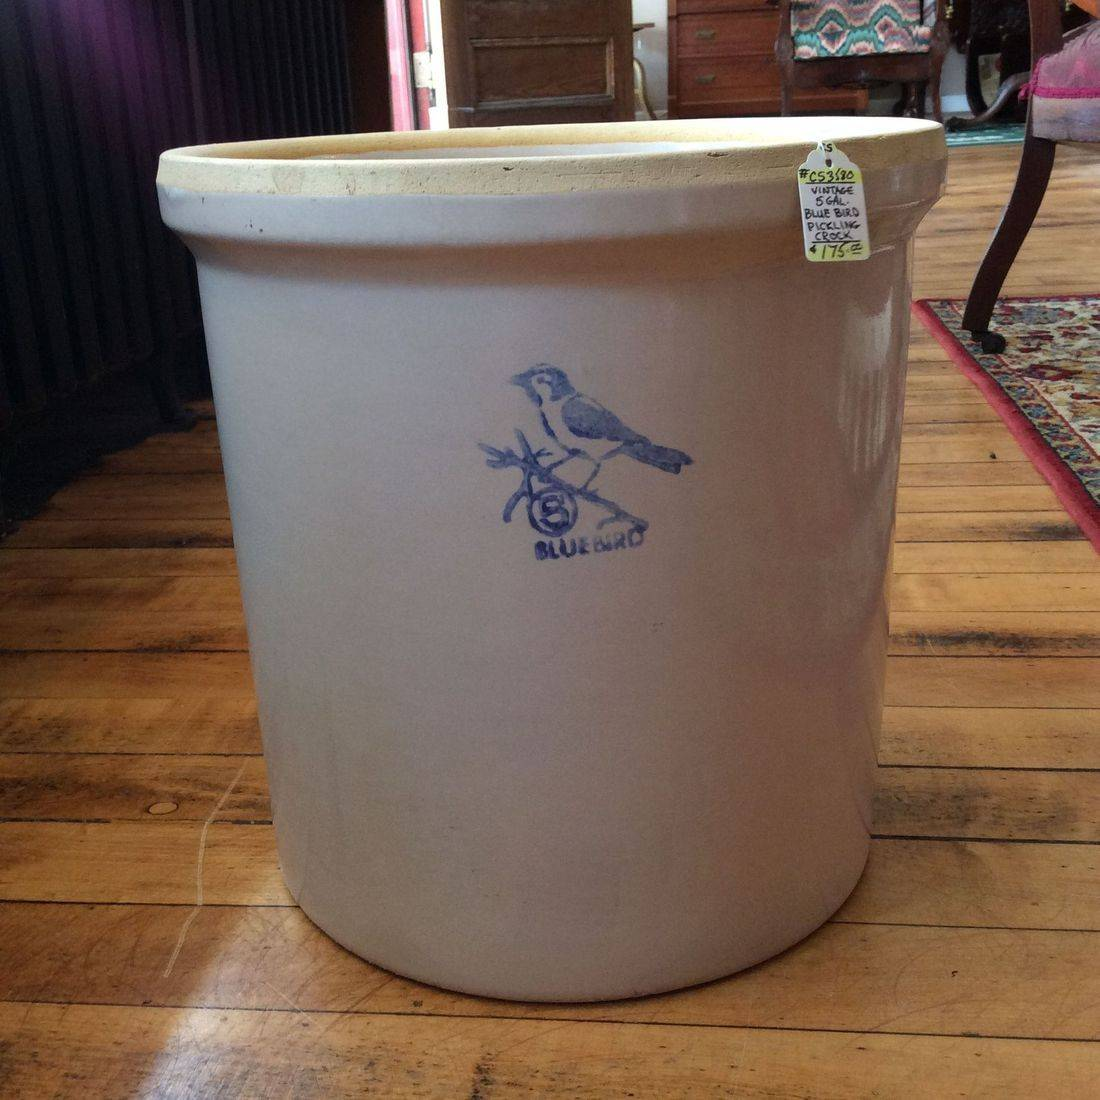 Vintage 5 Gal. Blue Bird Pickling Crock - No chips, No cracks - $175.00